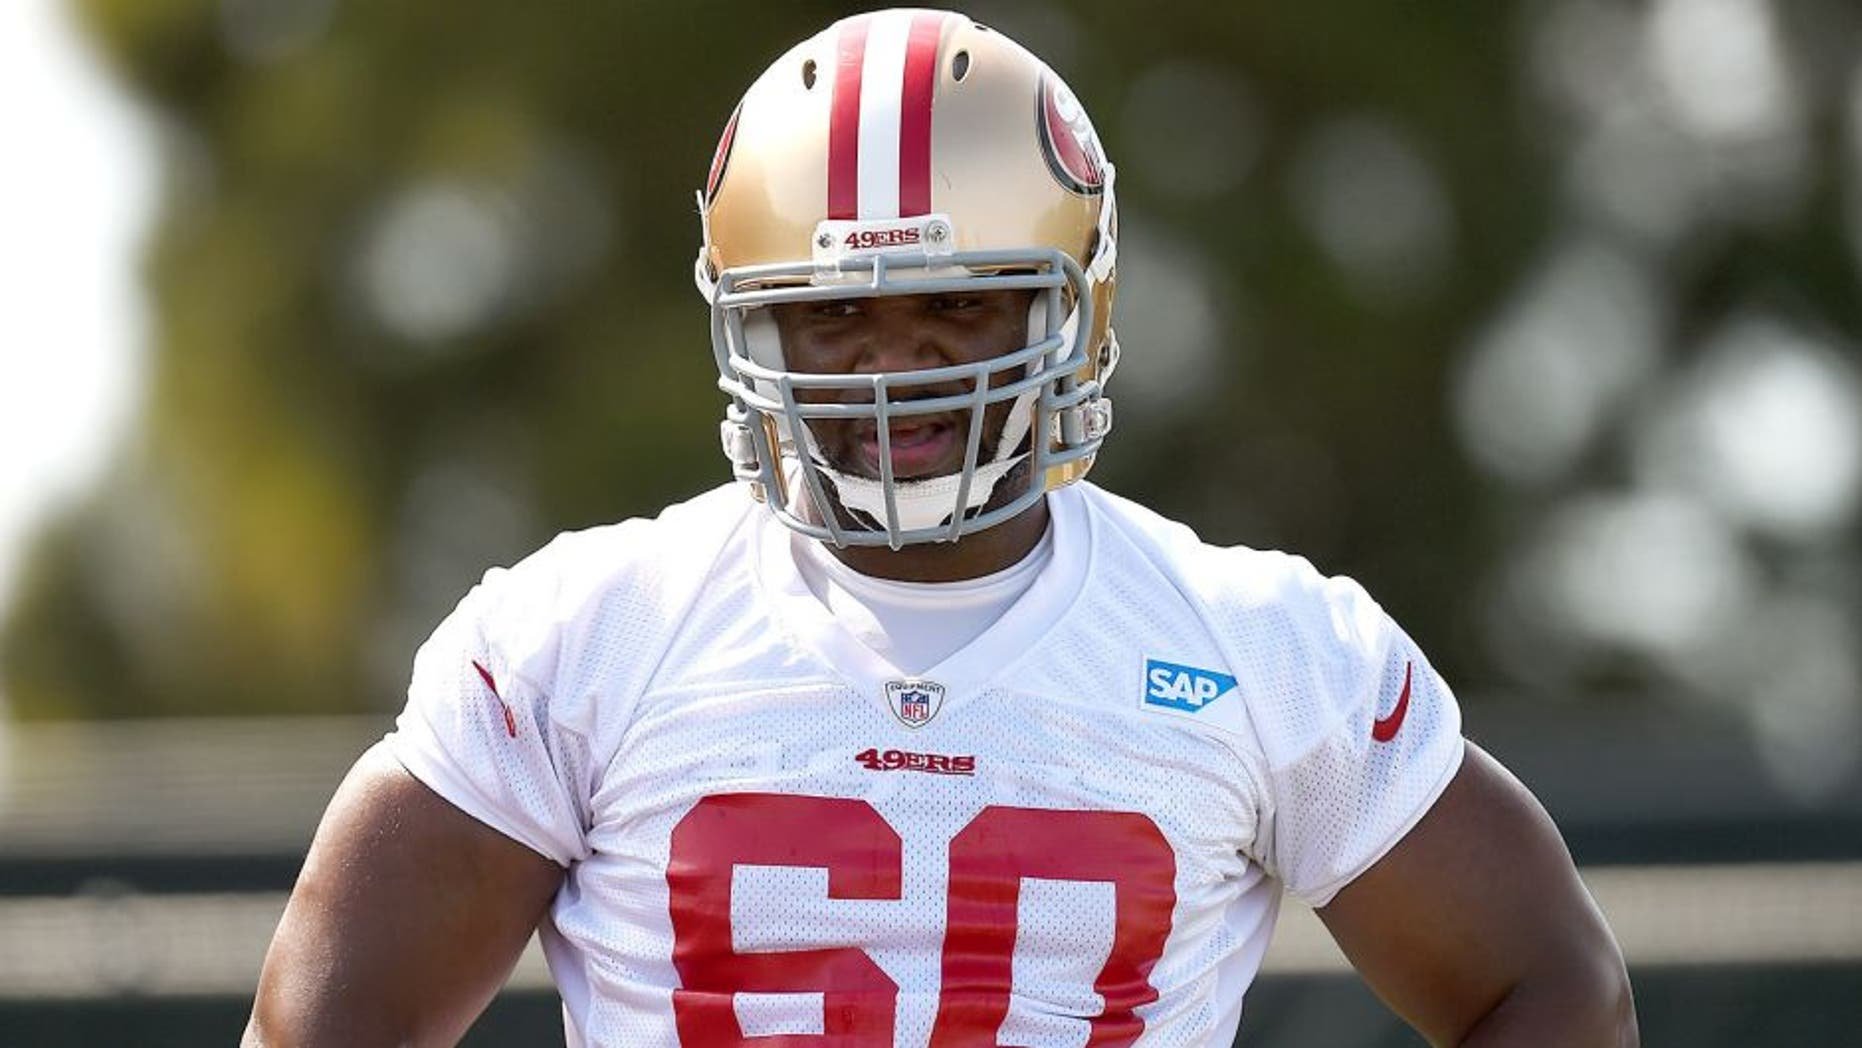 SANTA CLARA, CA - MAY 23: Kaleb Ramsey #60 of the San Francisco 49ers participates in drills during 49ers Rookie Minicamp on May 23, 2014 in Santa Clara, California. (Photo by Thearon W. Henderson/Getty Images)